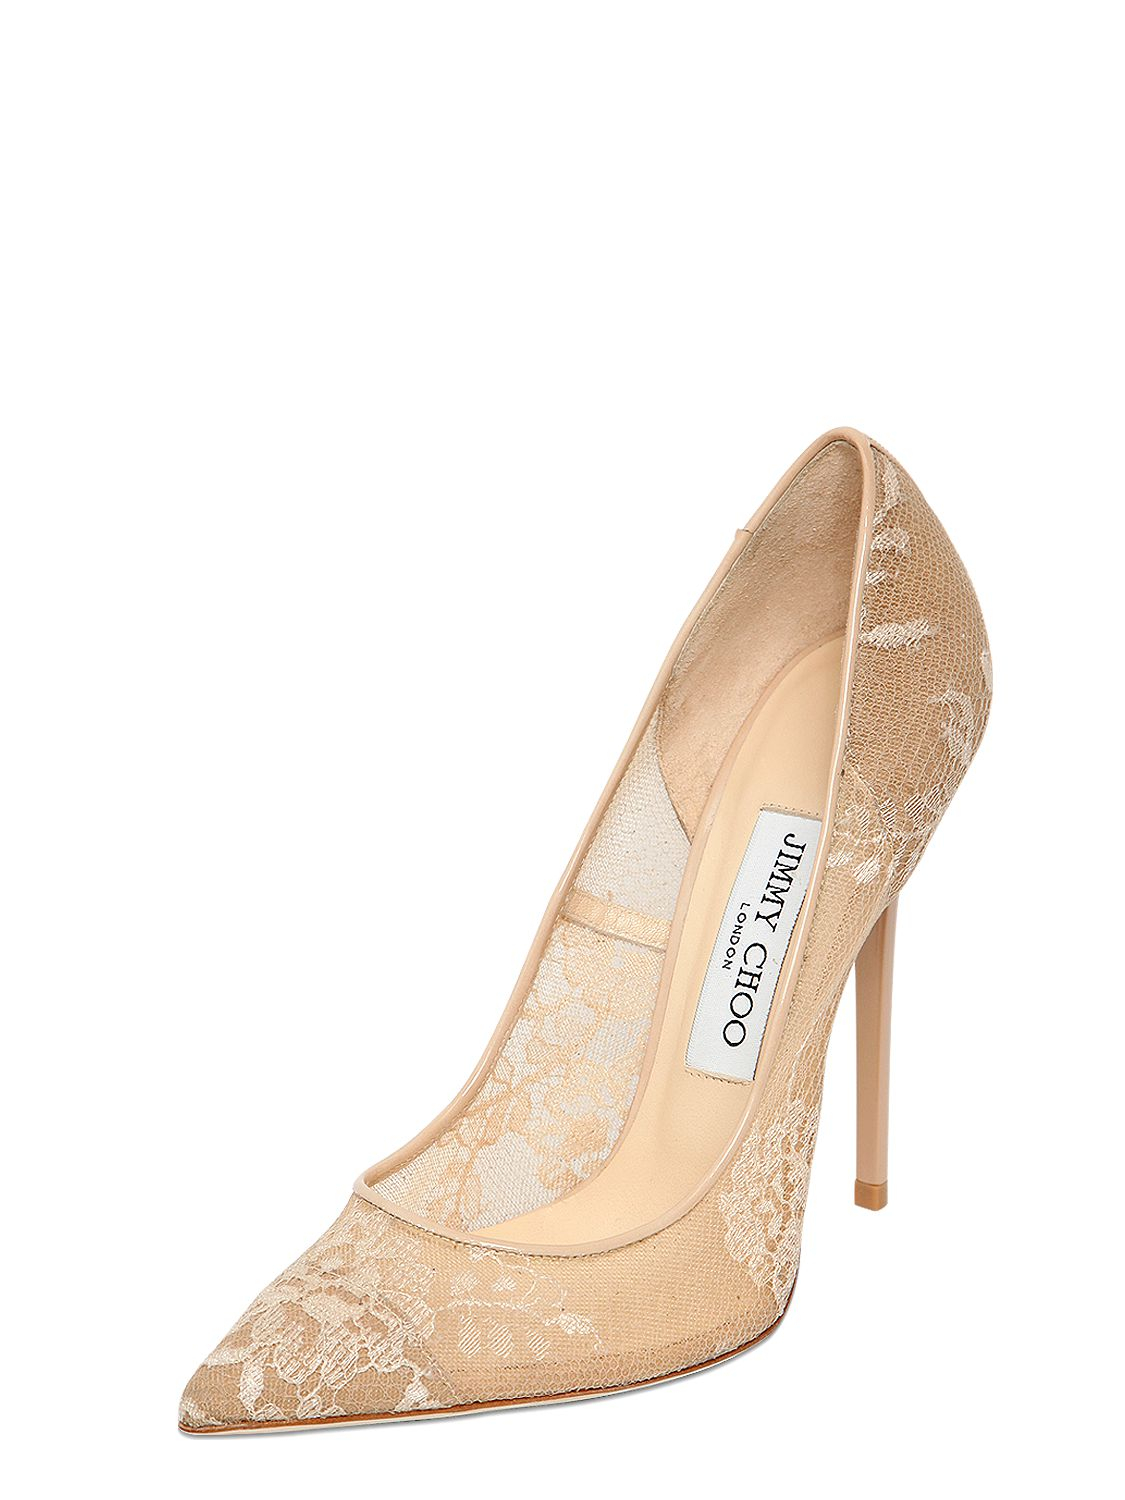 Lace Jimmy 120mm Floral Choo Metallic Pumps Anouk zMpSVqU